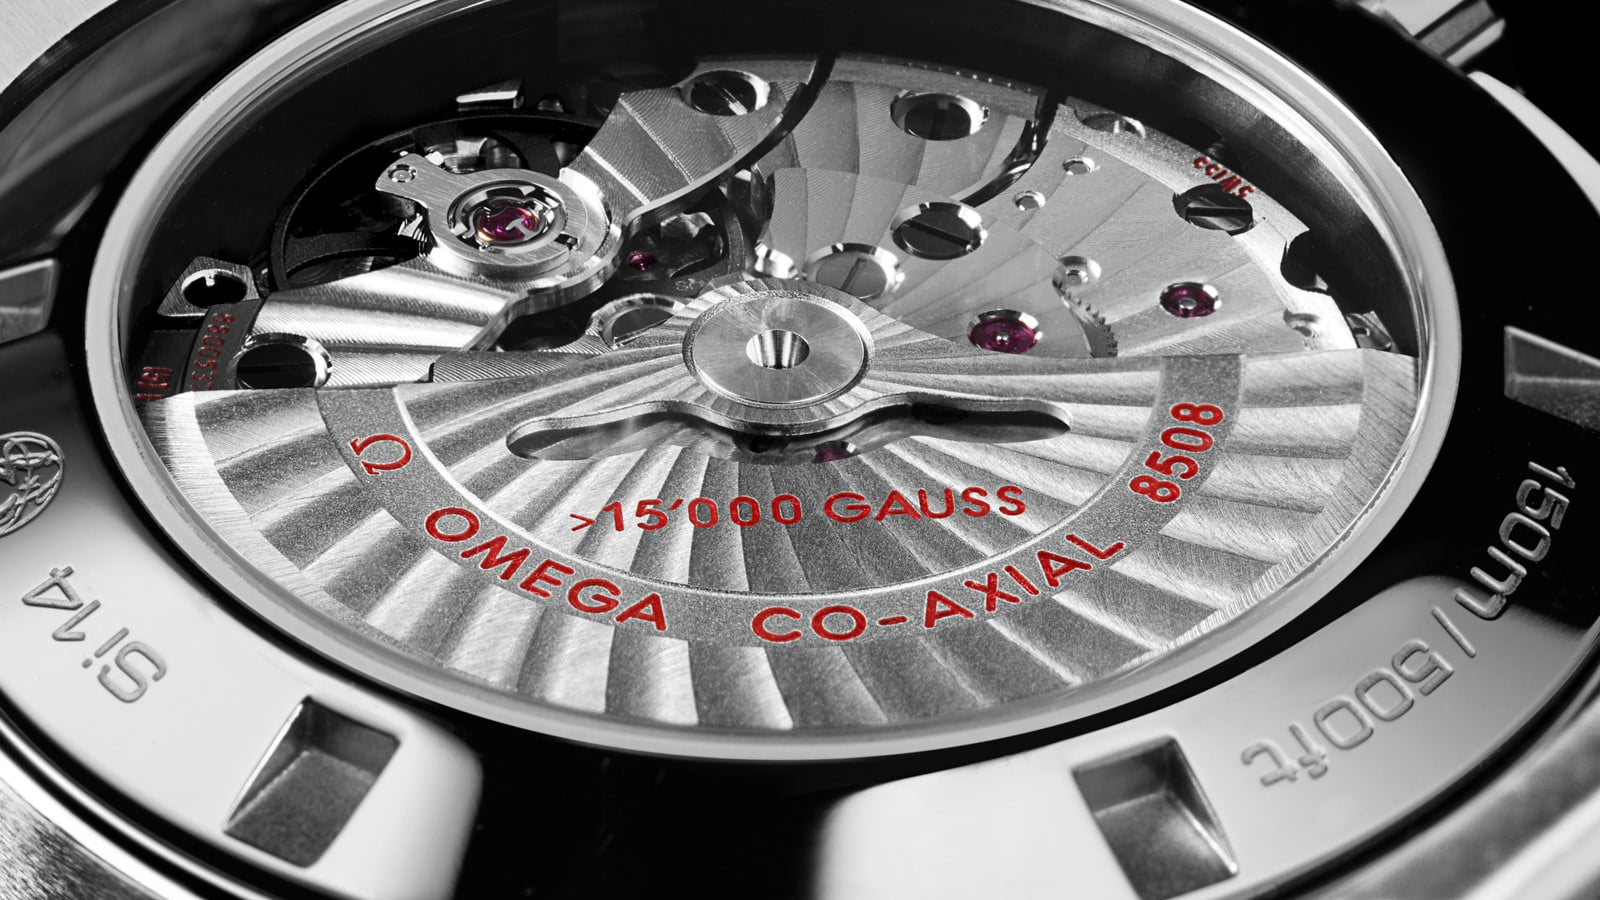 Close up of the co-axial movement that powers the Aqua Terra 15,000 Gauss watches